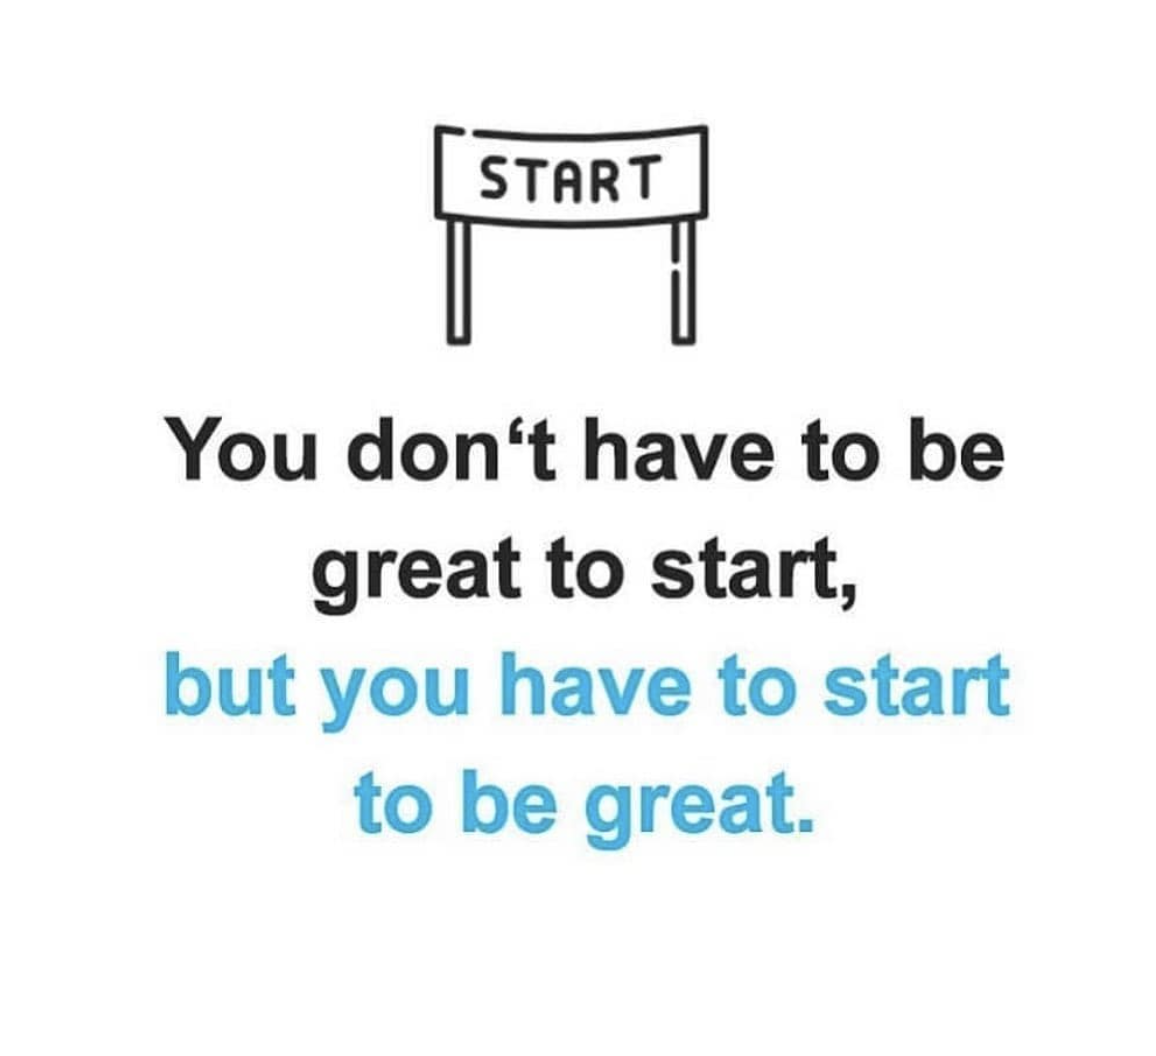 [Image] You don't have to be great to start but you have to start to be great.